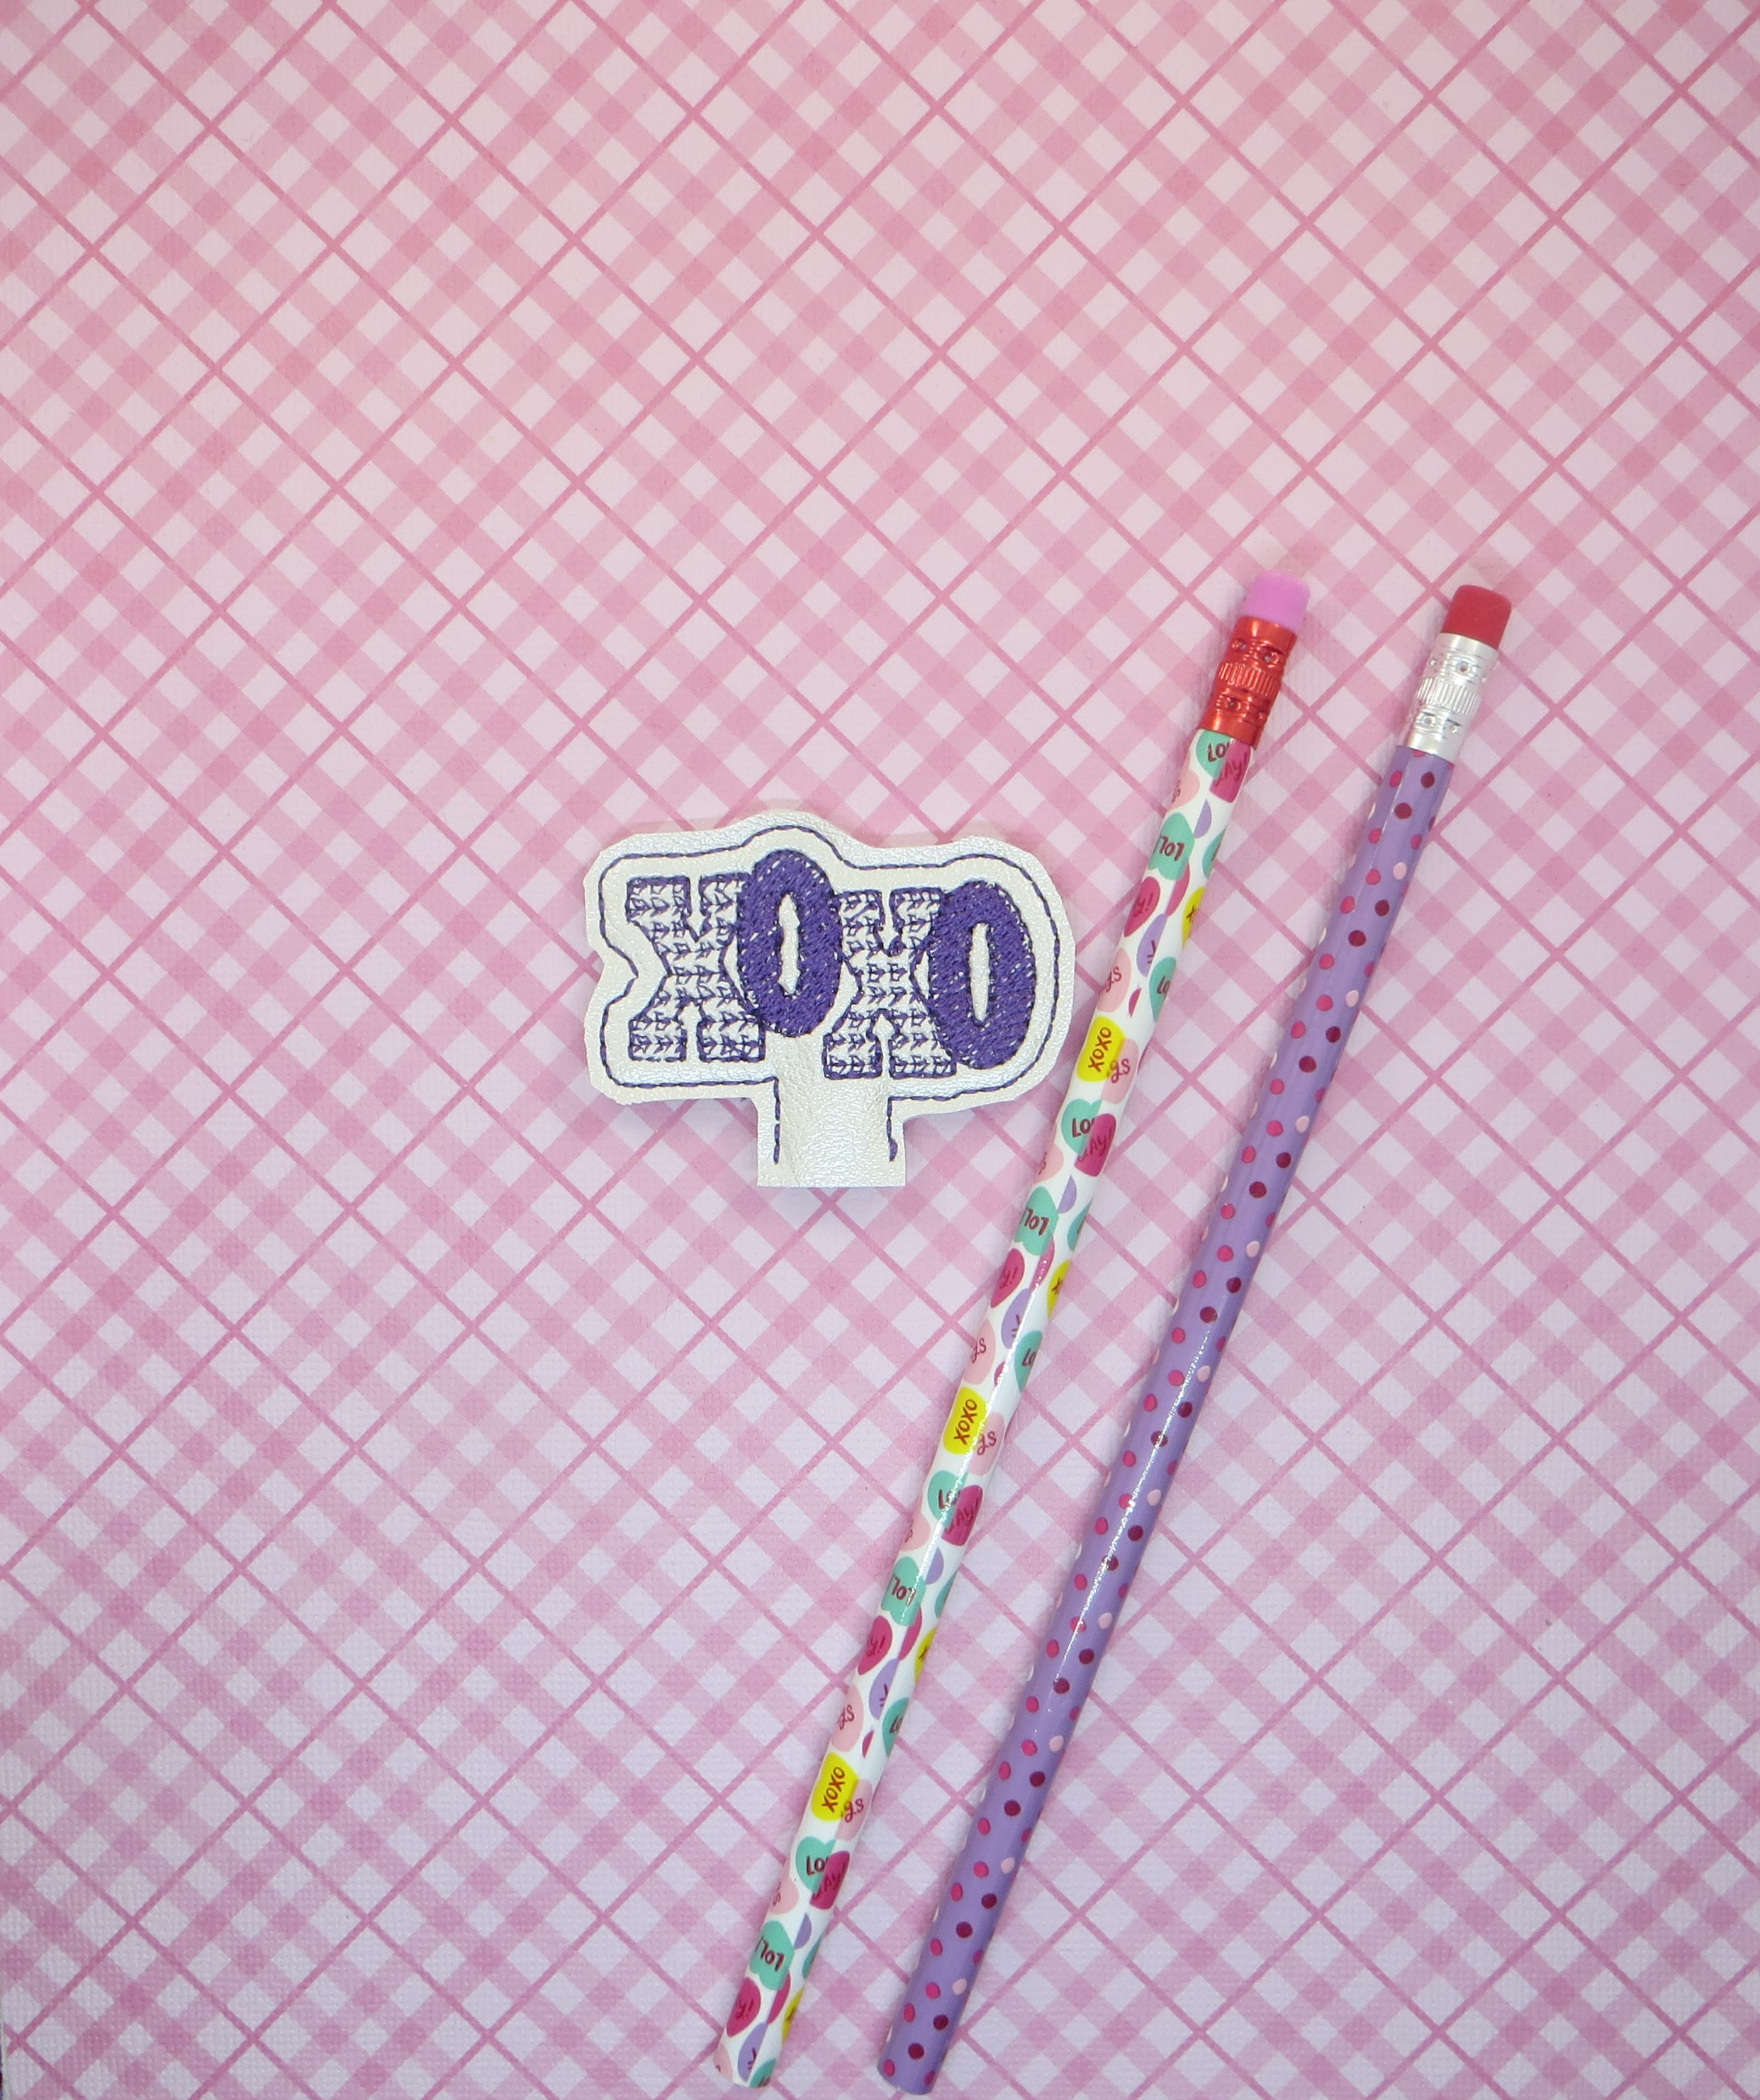 XOXO Pencil Topper Embroidery Design